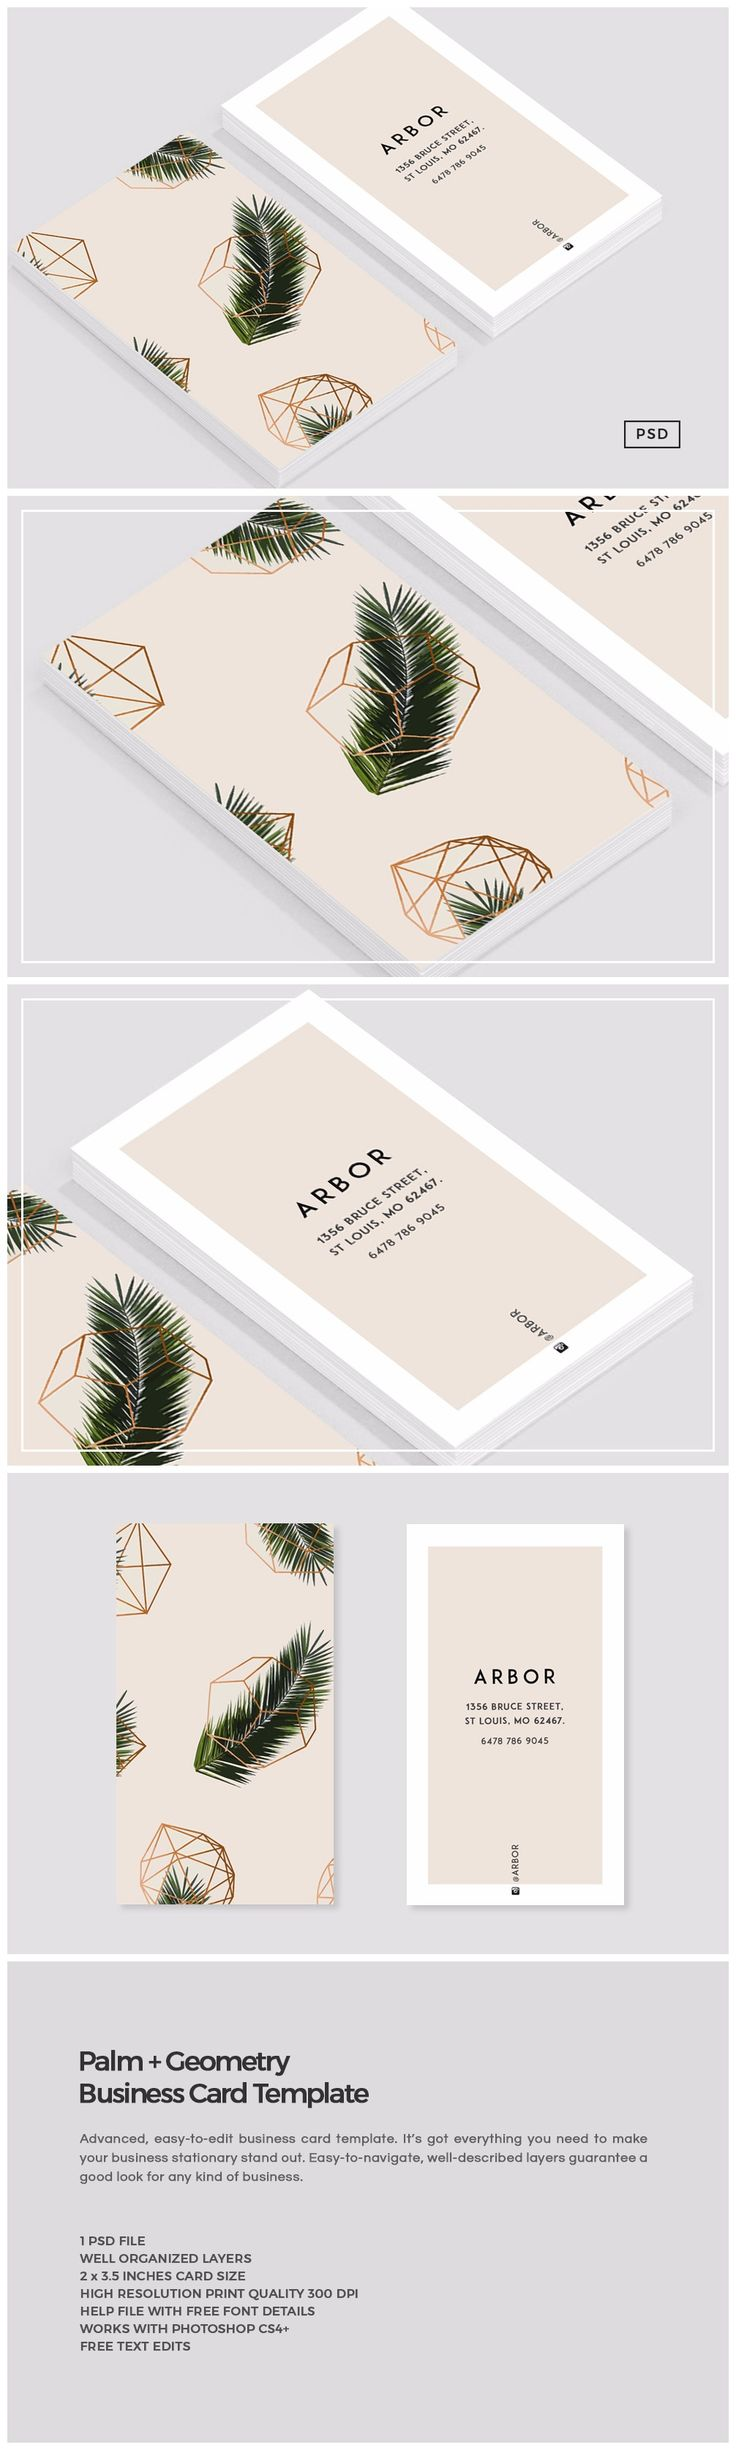 Palm + Geometry Business Card by The Design Label on Creative Market